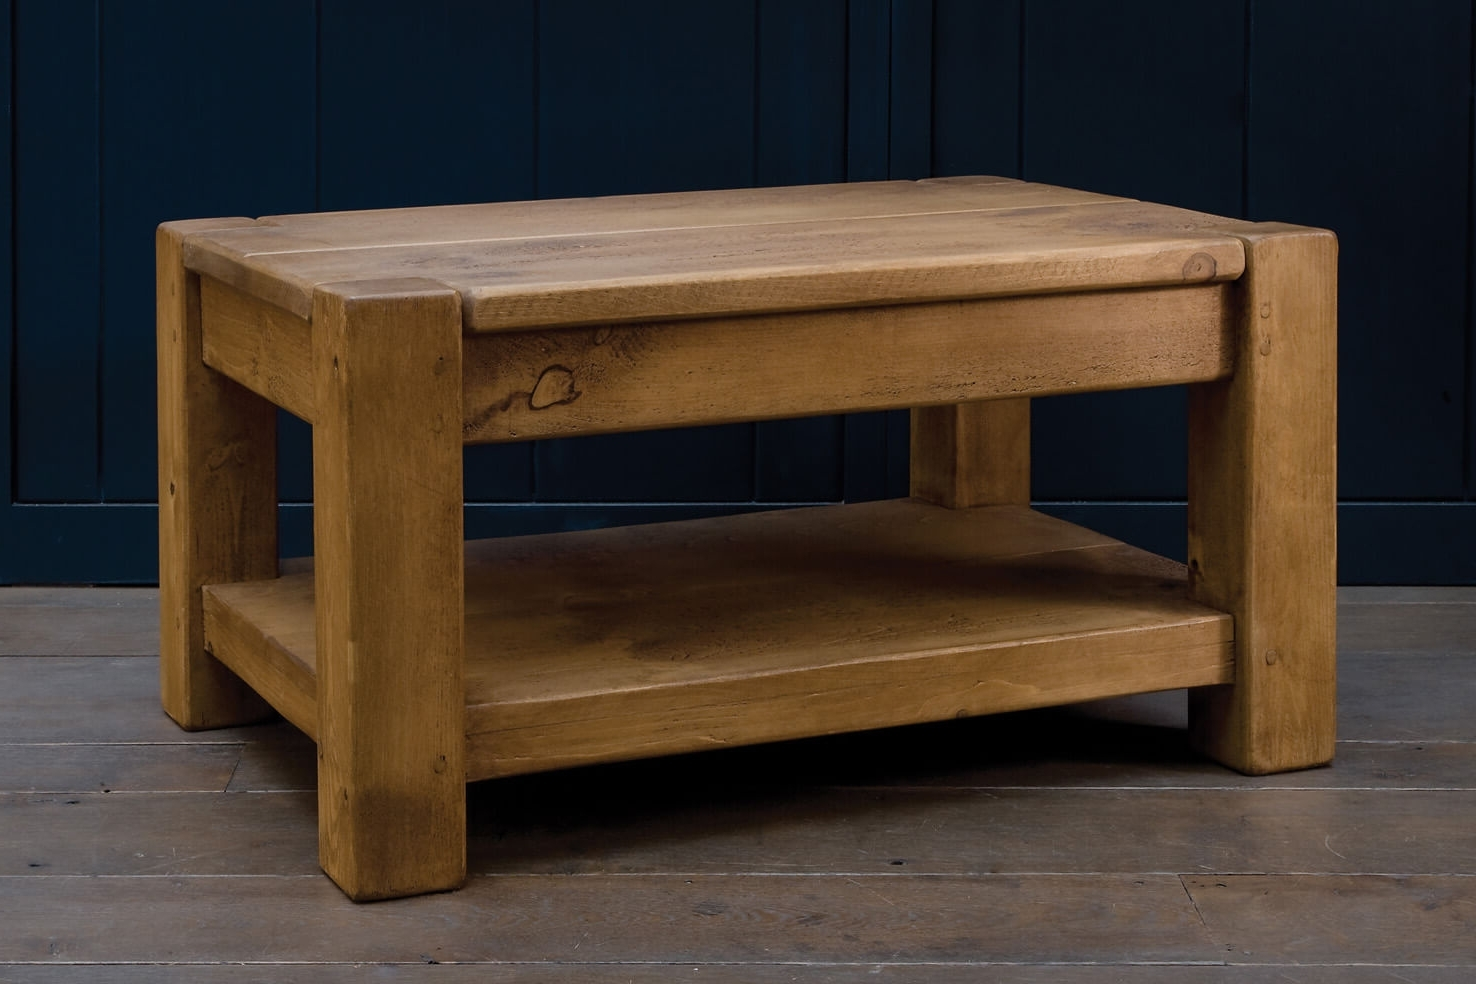 Fashionable Mill Coffee Tables In Rustic Wood Coffee Tables Handmade From Solid Oak Planks (View 9 of 20)